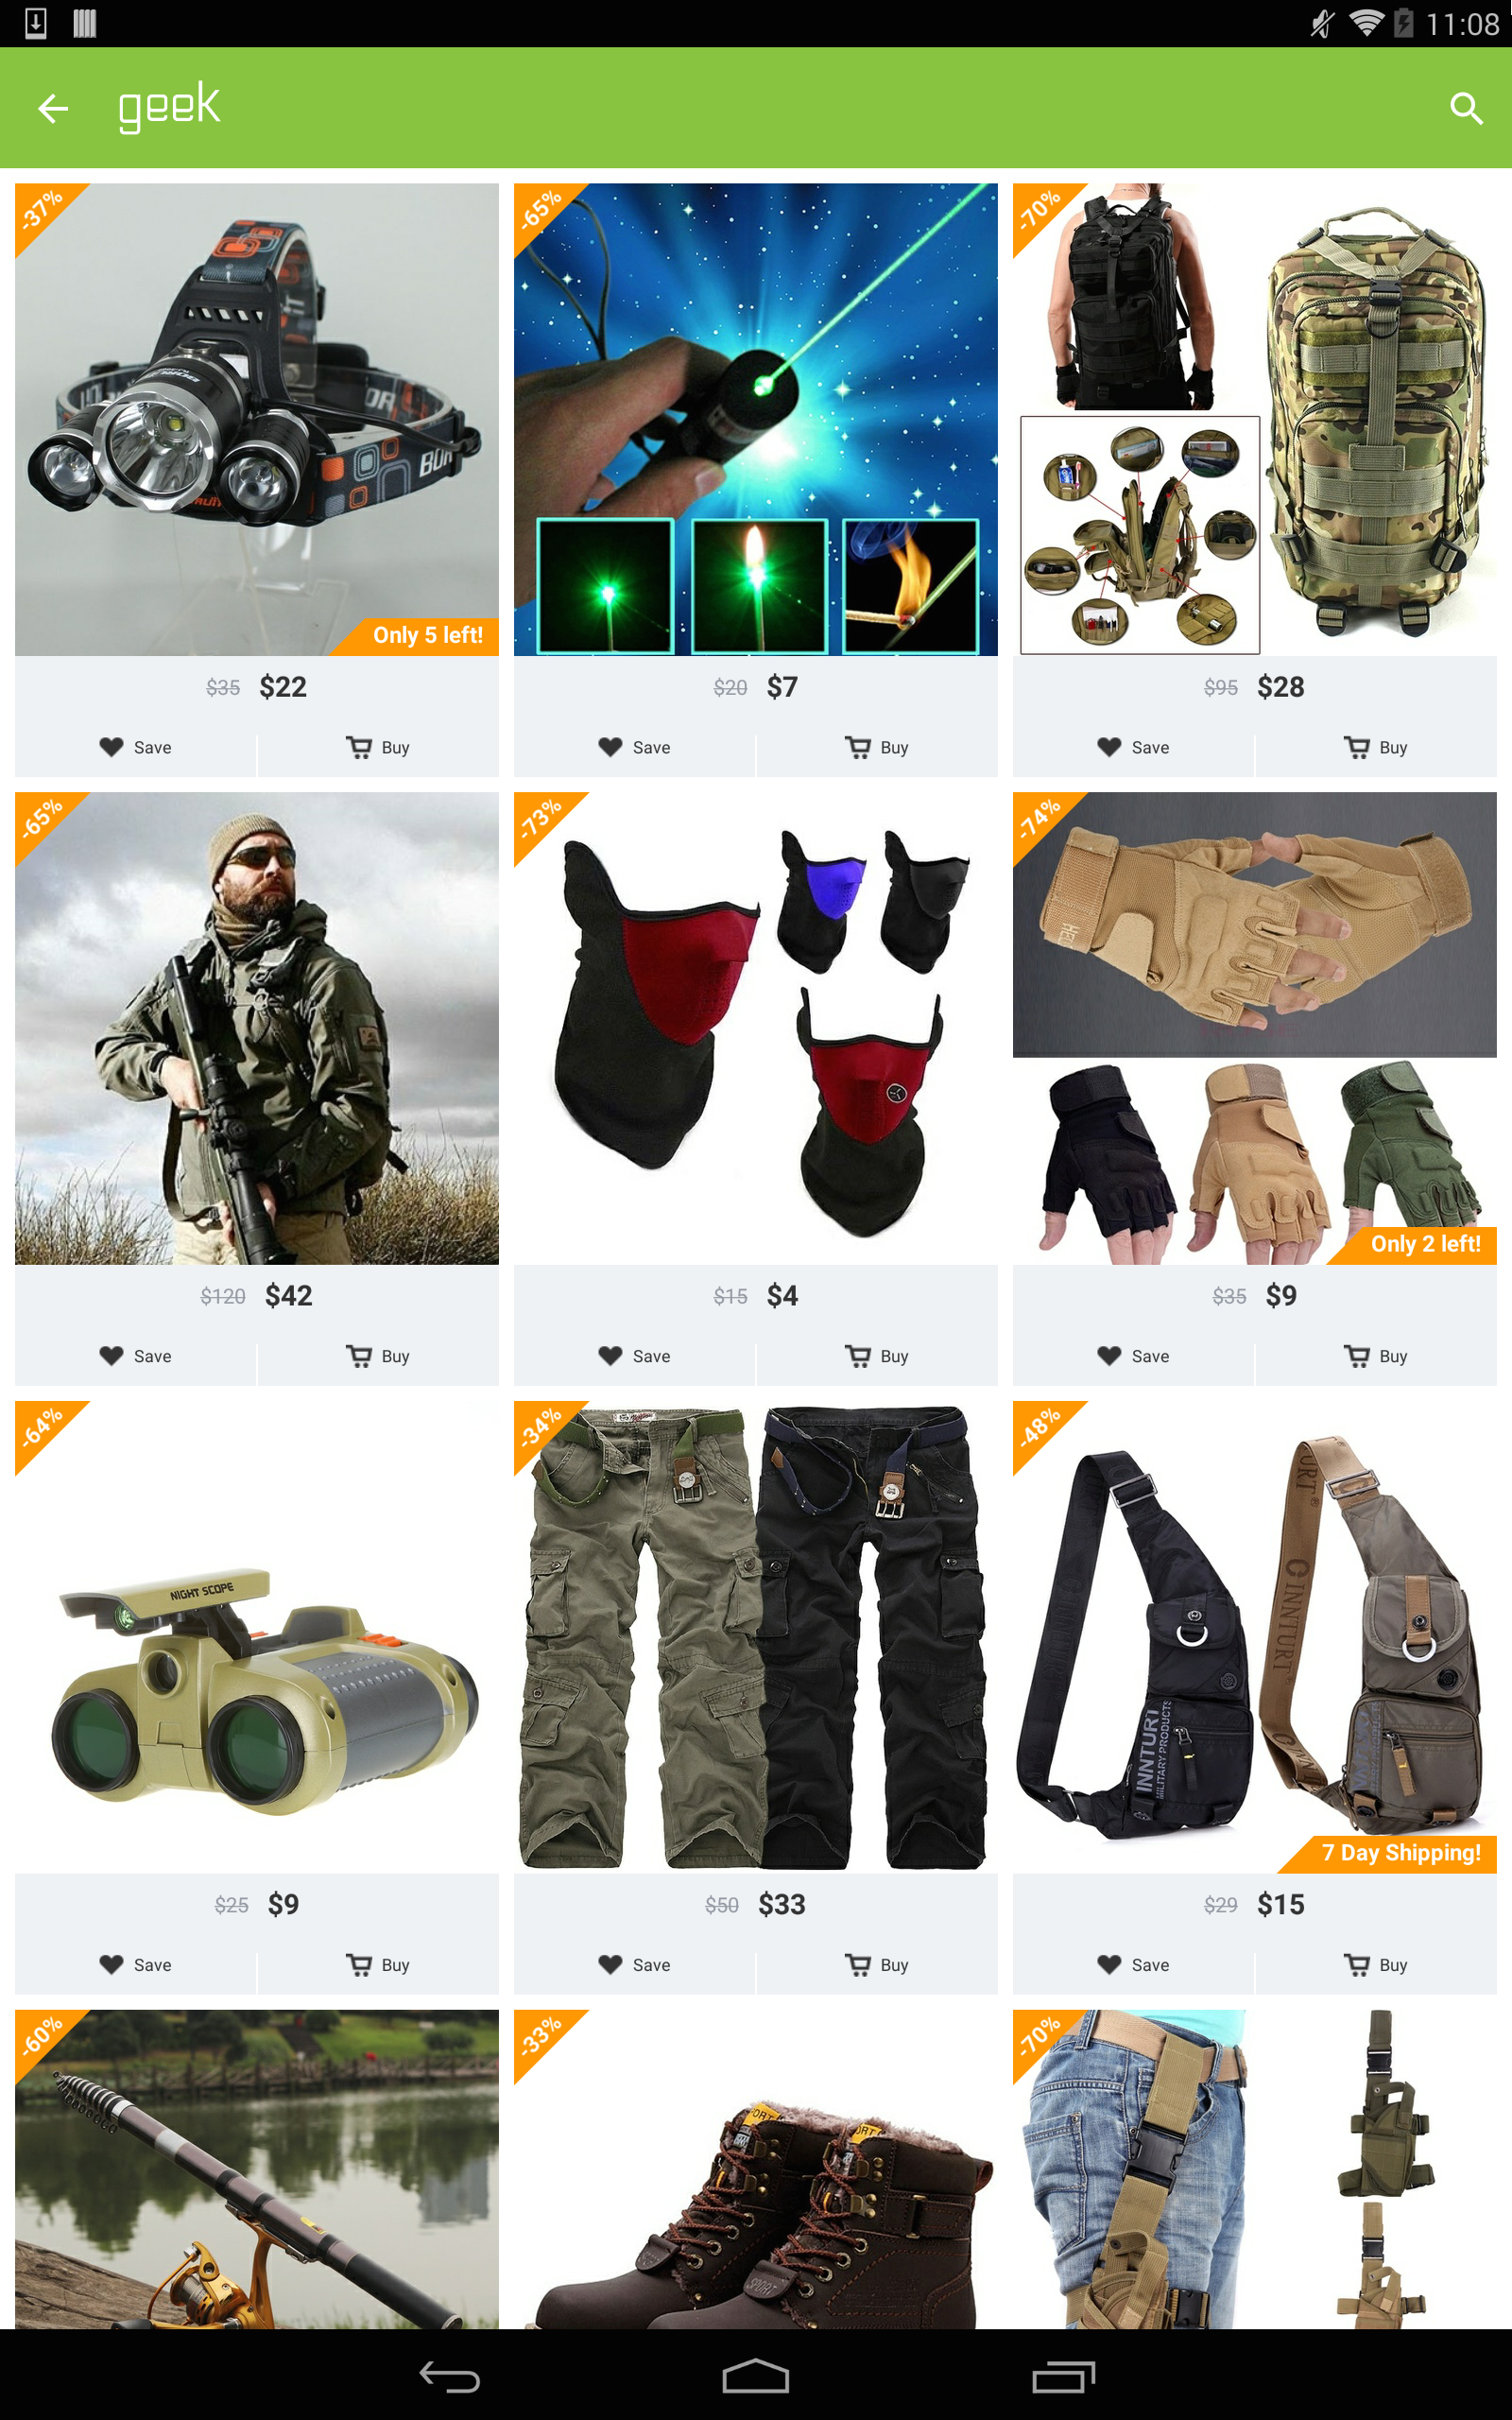 Geek - Smarter Shopping screenshot #8